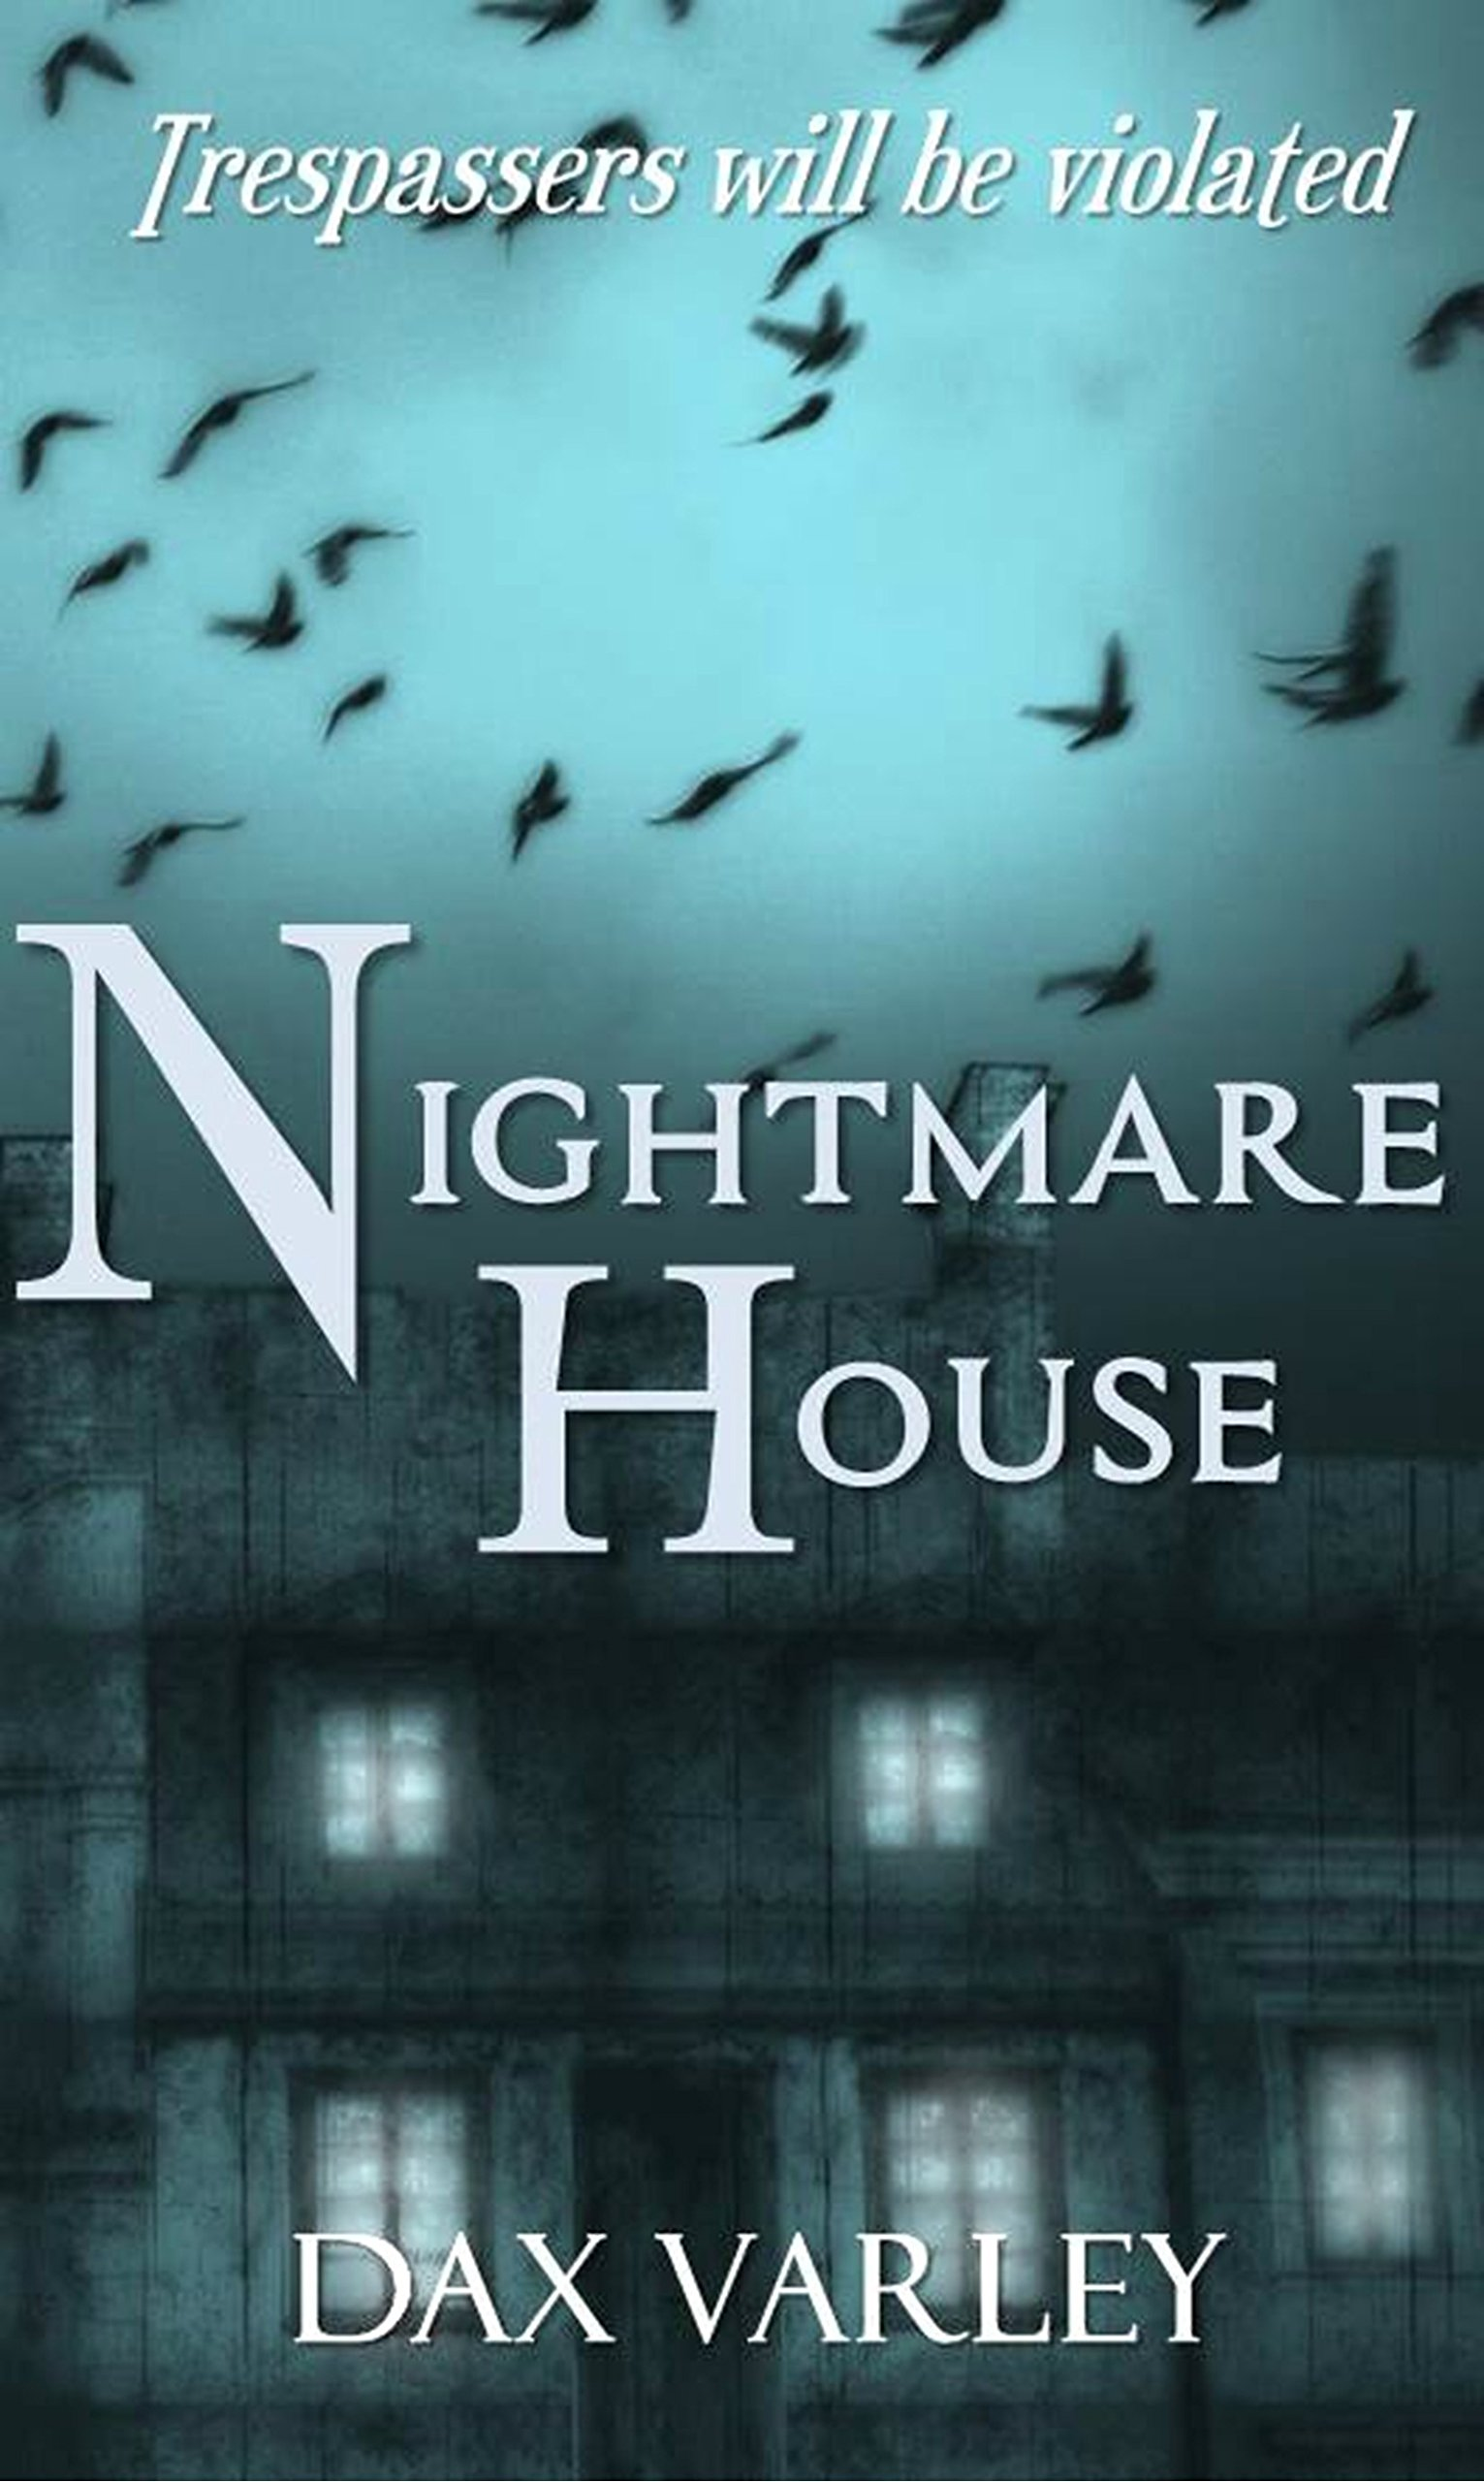 House of Nightmares Haunted House Nightmare House a Haunting